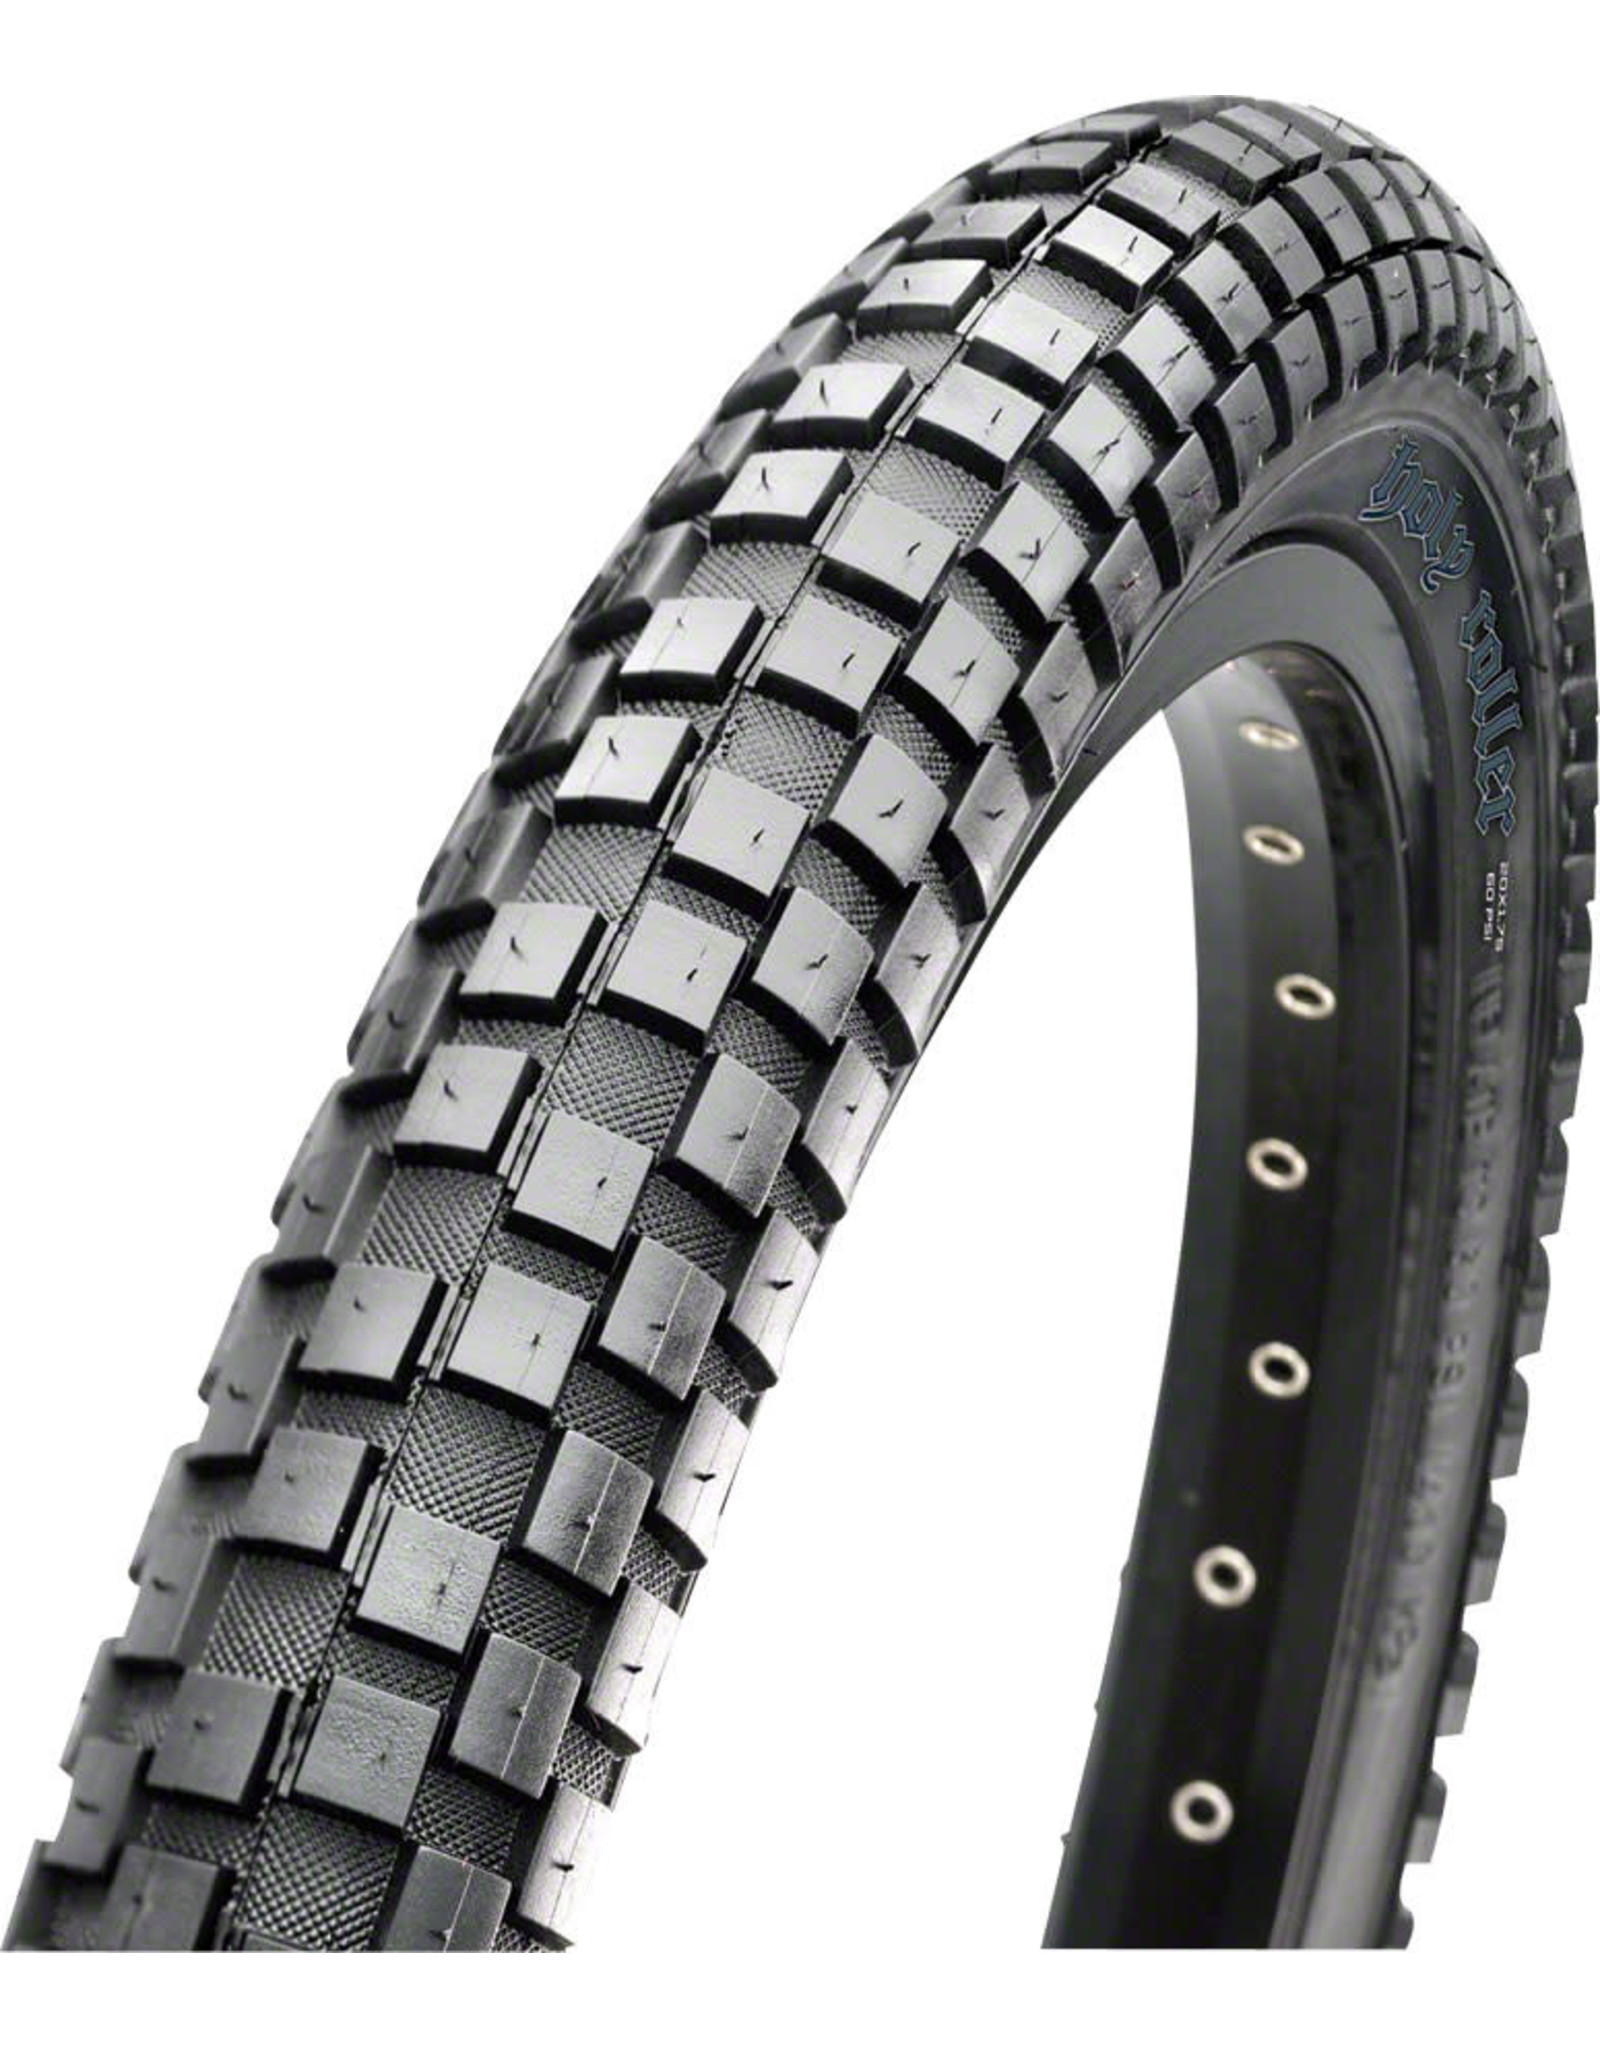 Maxxis Maxxis - Holy Roller Tire - 24 x 1.85, Clincher, Wire, Black, Single